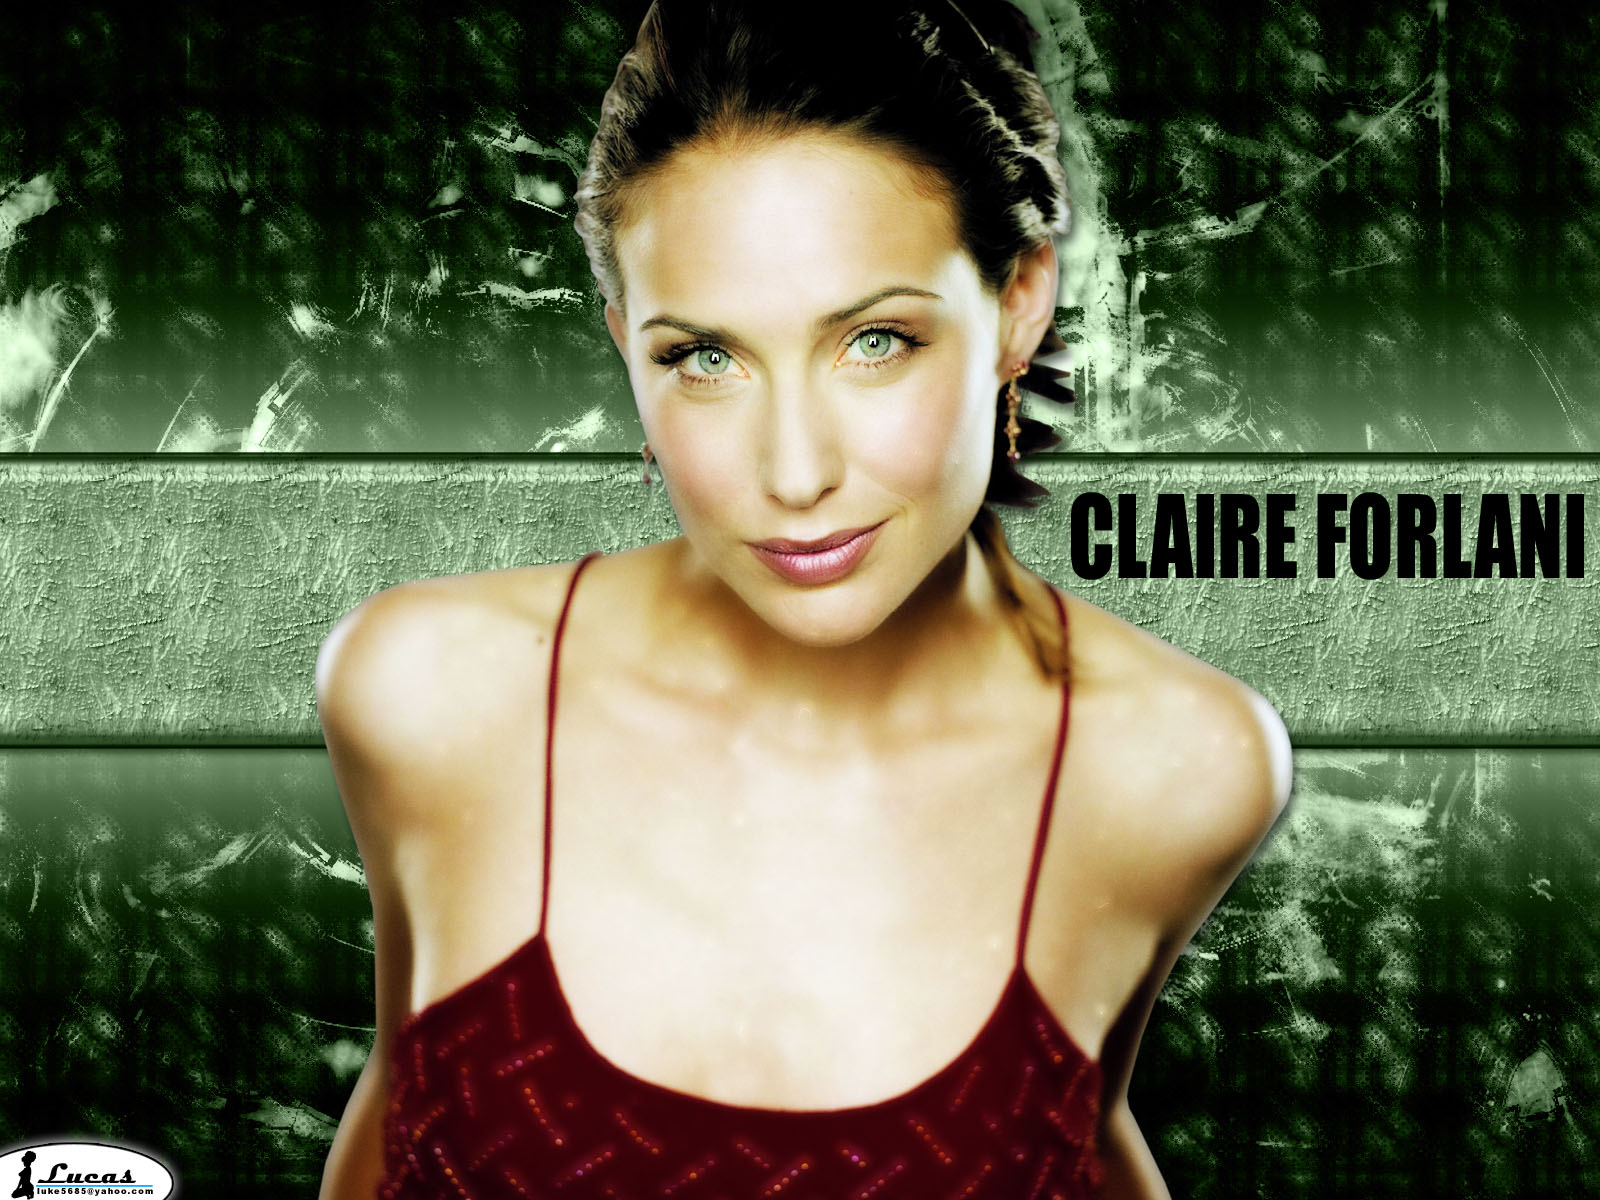 Claire Forlani - Images